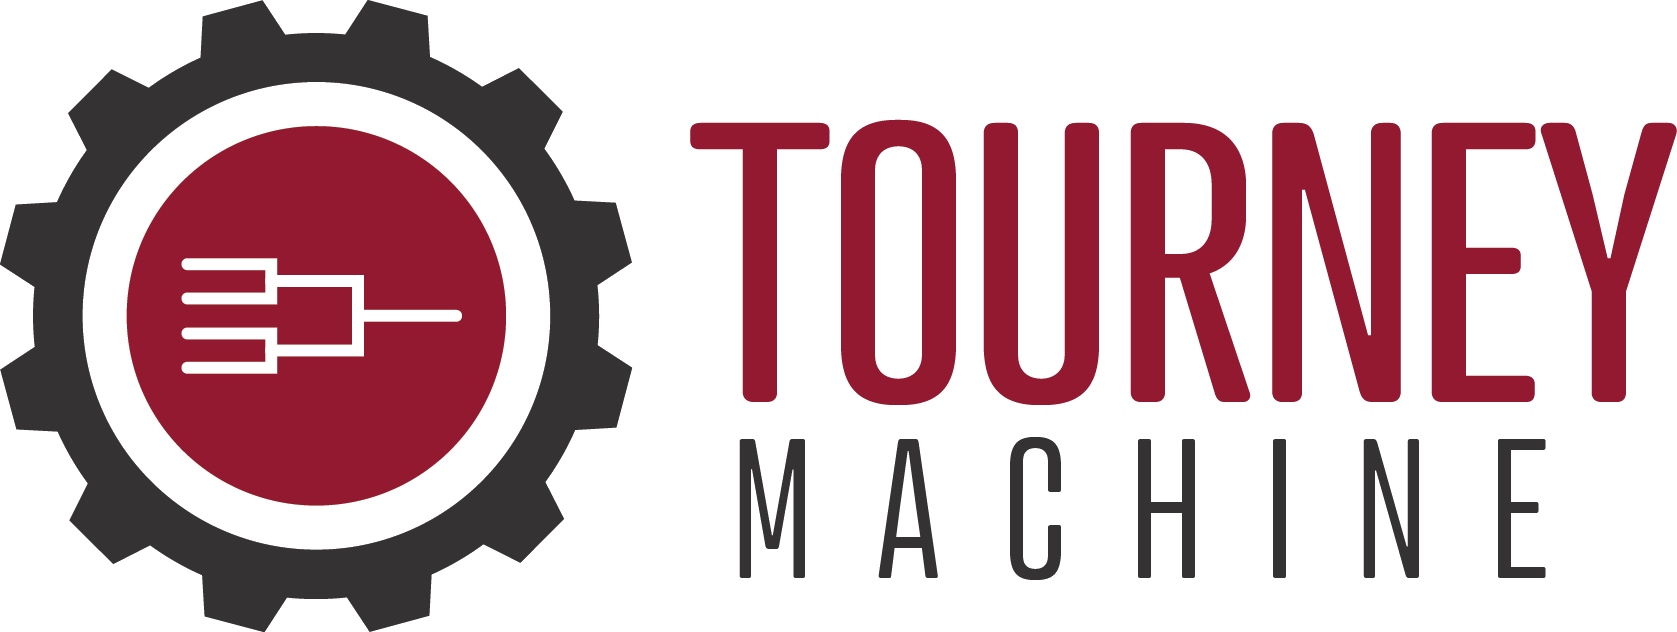 tourney-machine